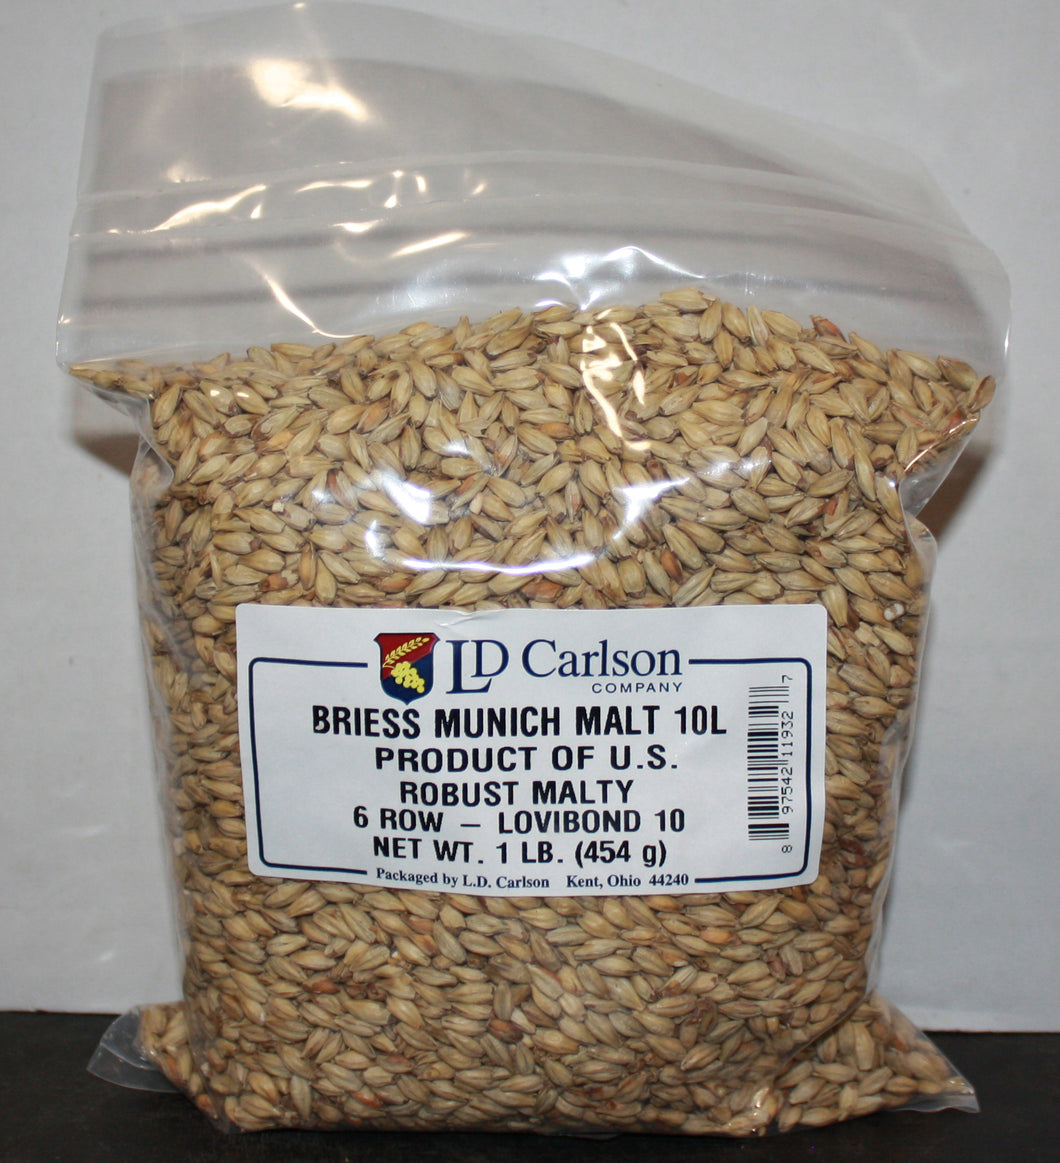 Briess Bonlander Munich Malt - 1 LB